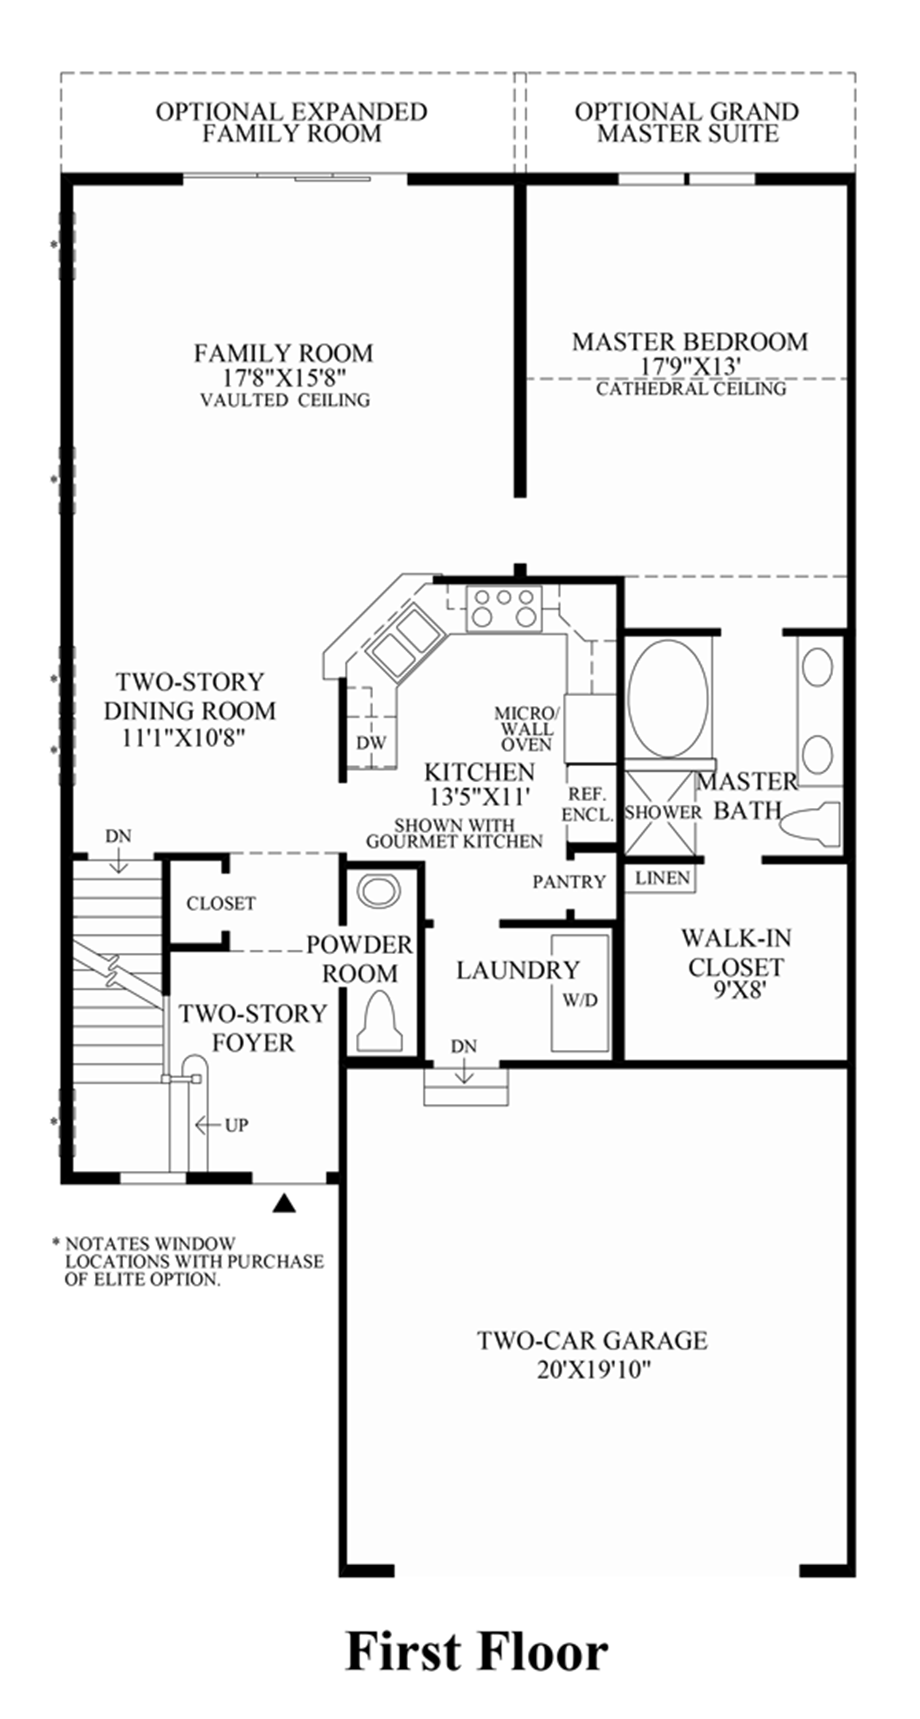 Newtown woods townhome collection the tamarack home design for Townhomes with first floor master